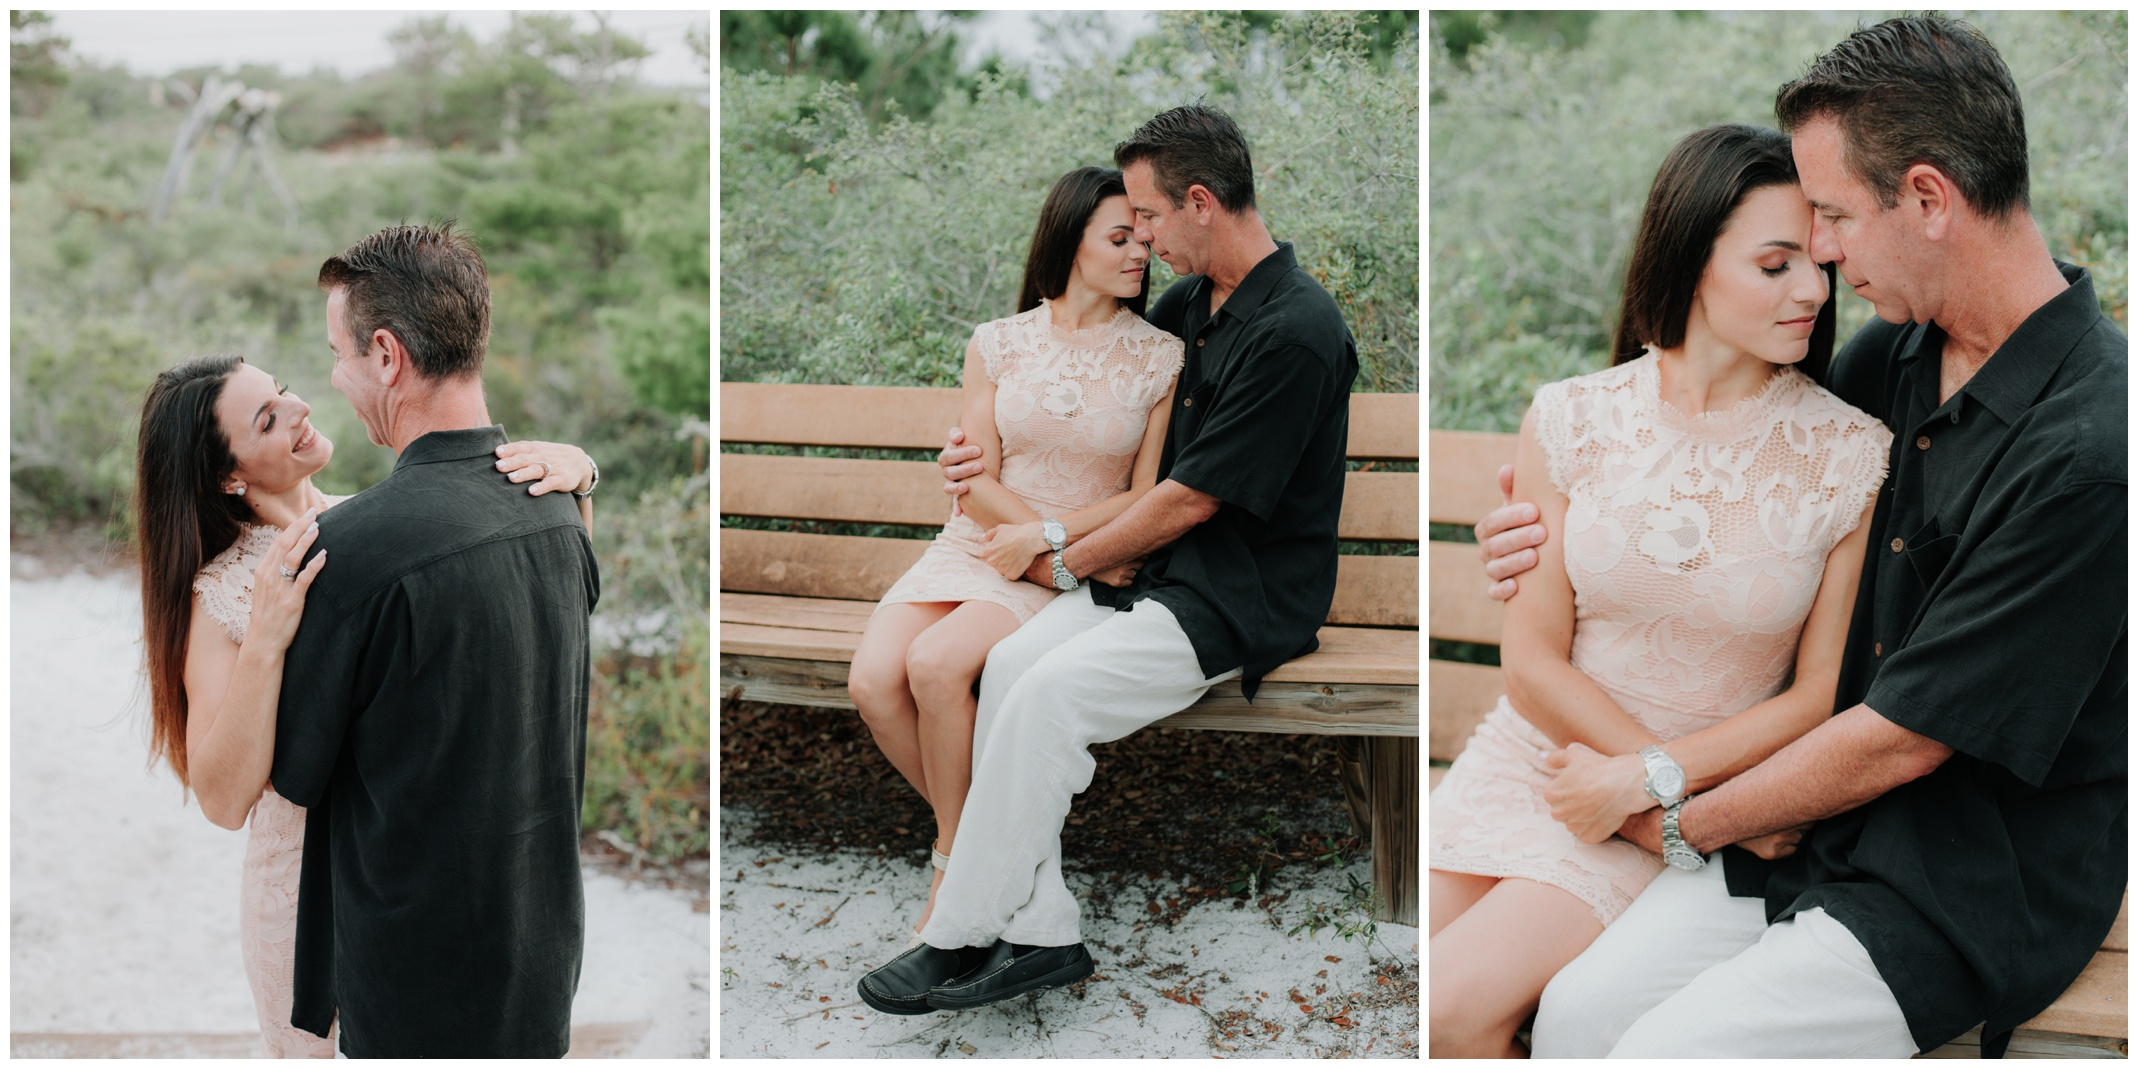 Romantic engagement photos taken by South Florida Wedding Photographer